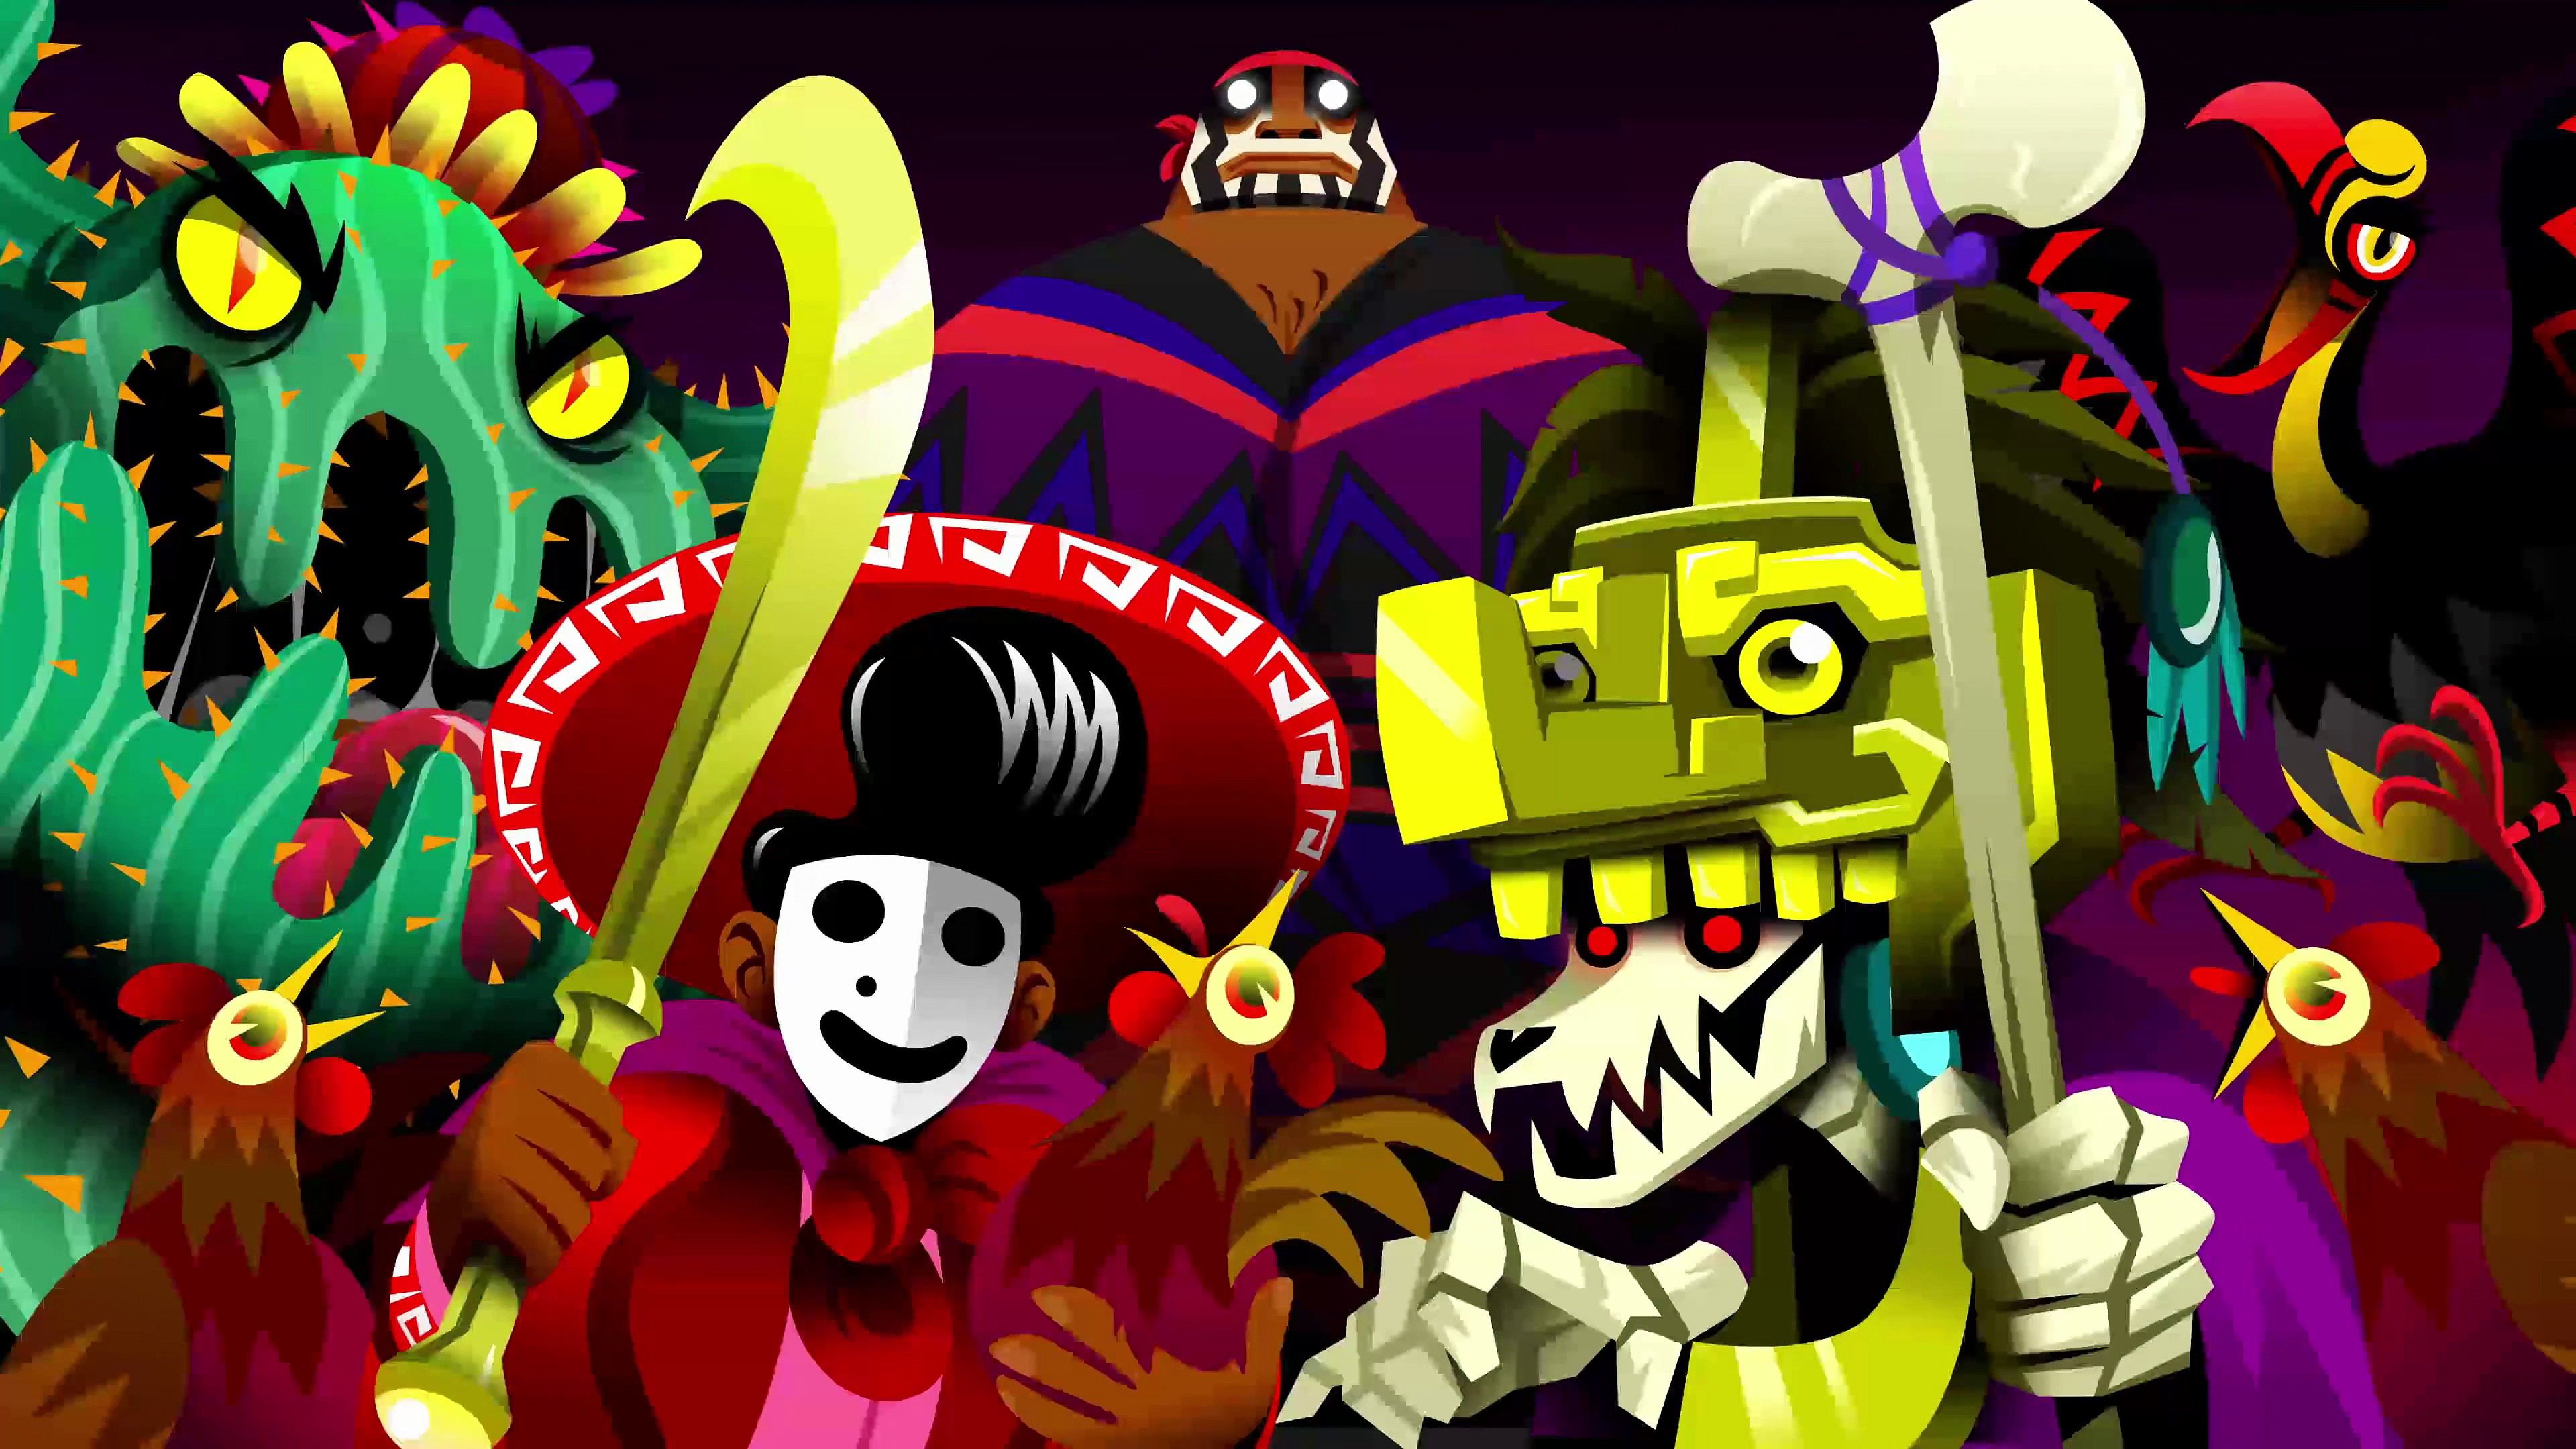 4k Guacamelee 2 Wallpaper Hd